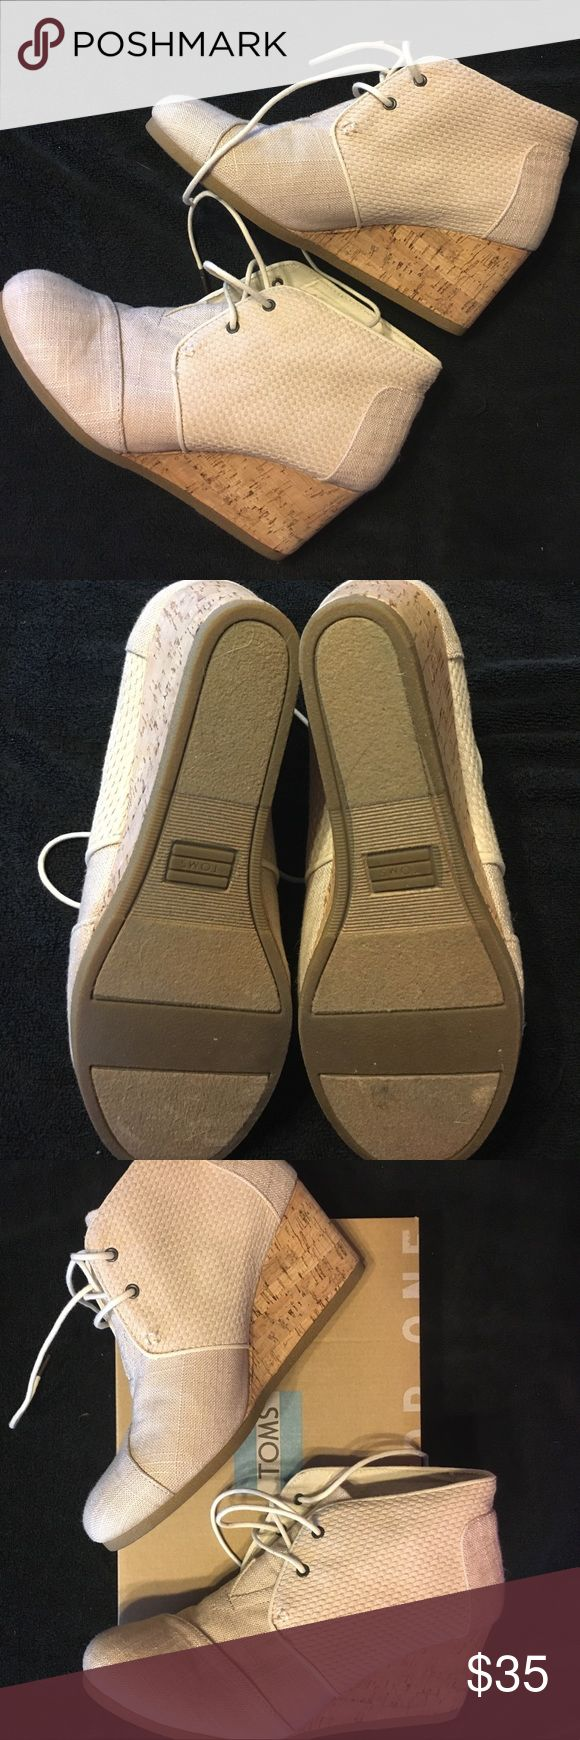 TOMS Desert Wedge Whisper Burlap Sz10 Women's TOMS Desert Wedge Whisper Burlap Textured Size 10. Worn once. Great condition. Toms Shoes Wedges